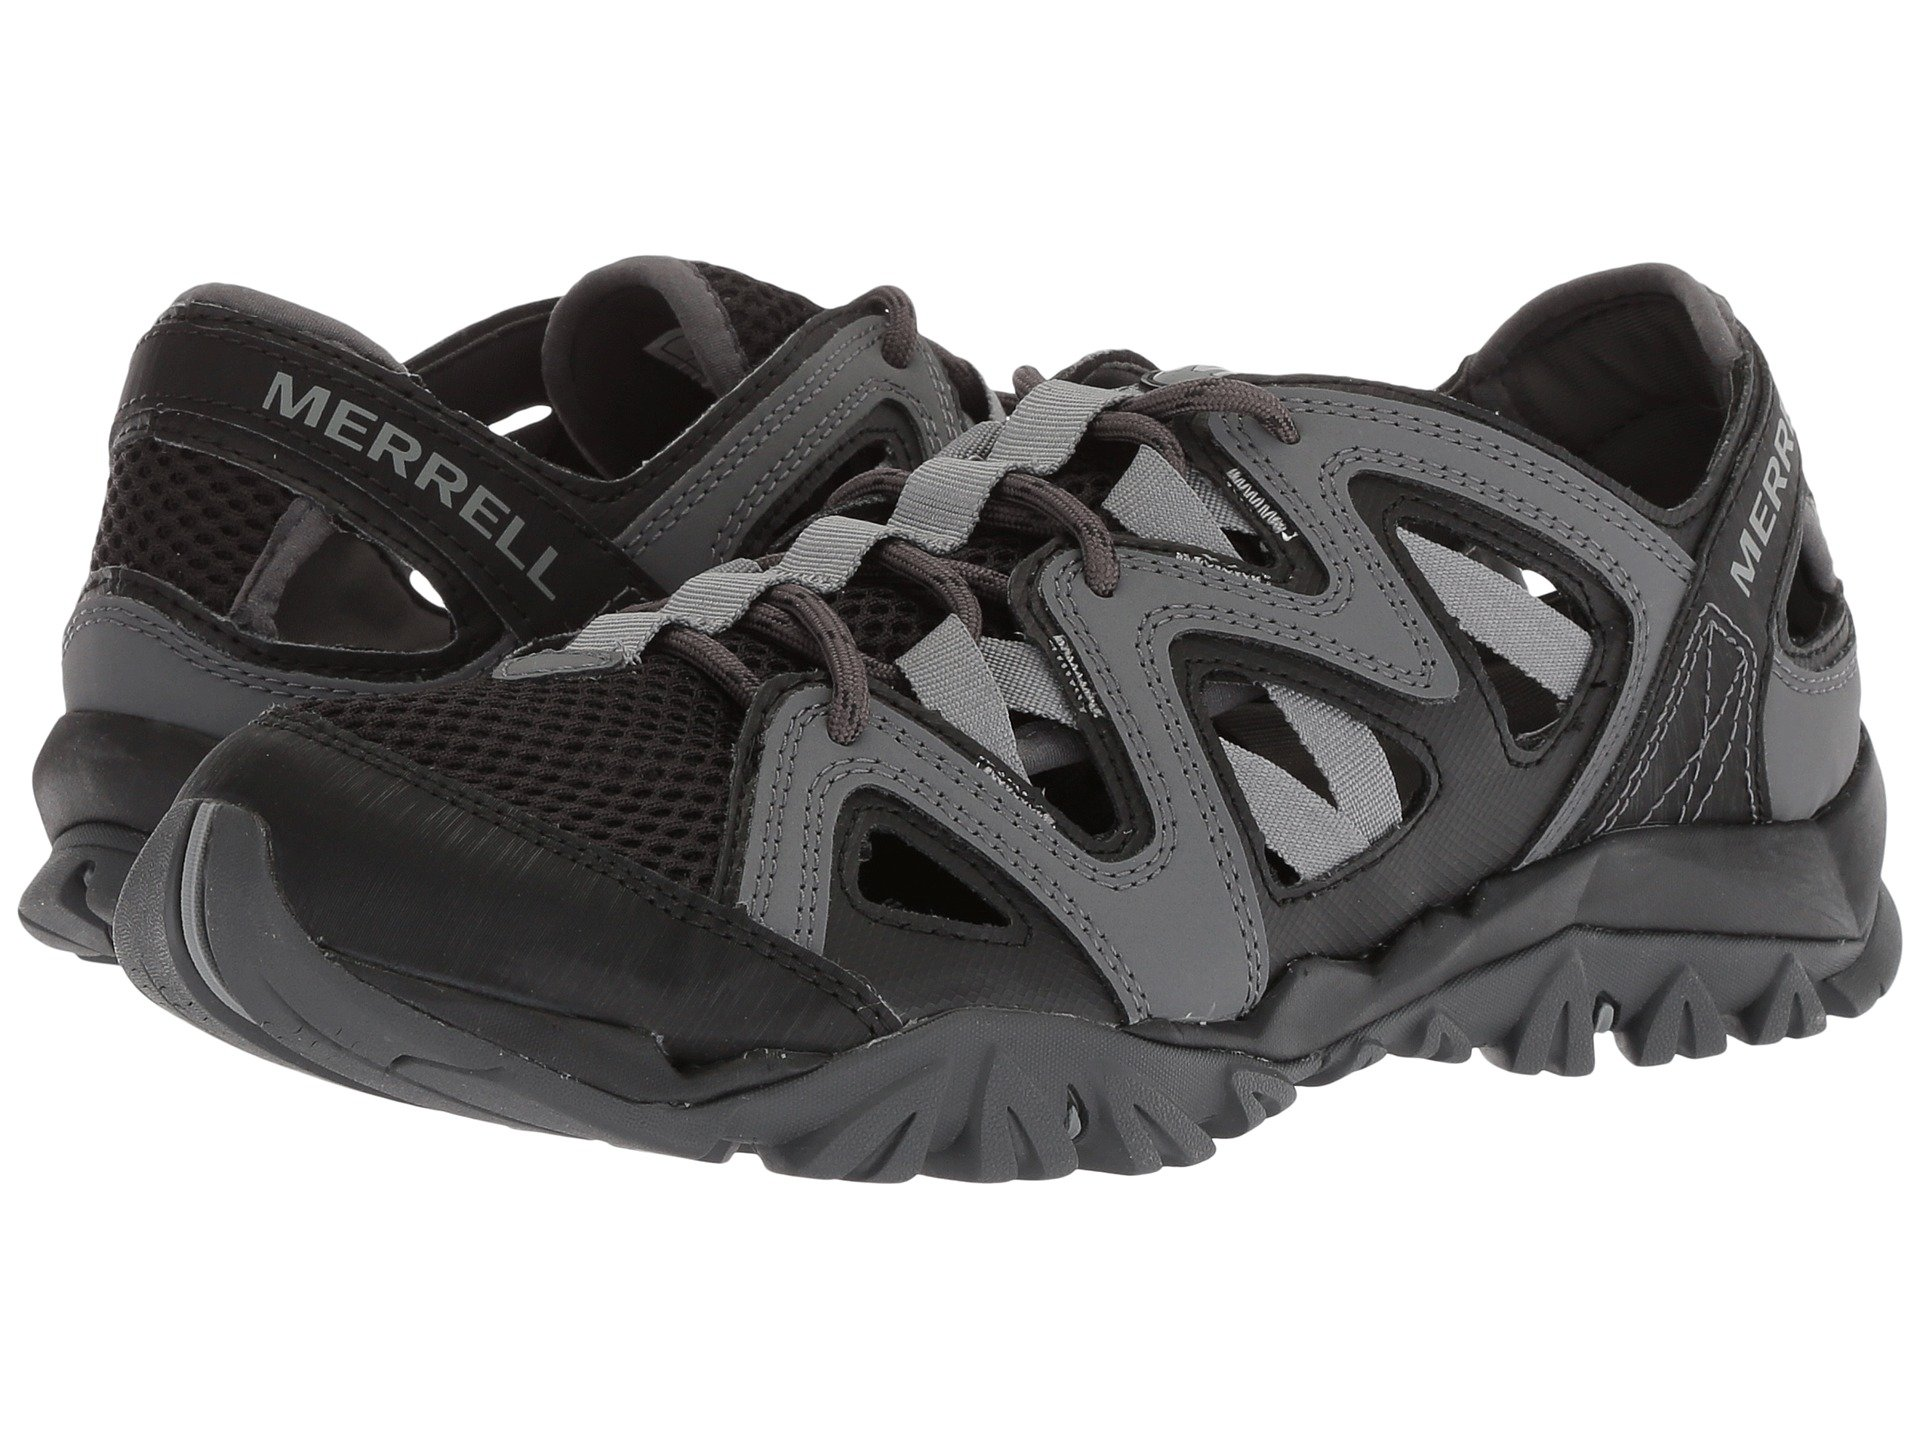 207cb40d8463f Men s Merrell Sandals + FREE SHIPPING